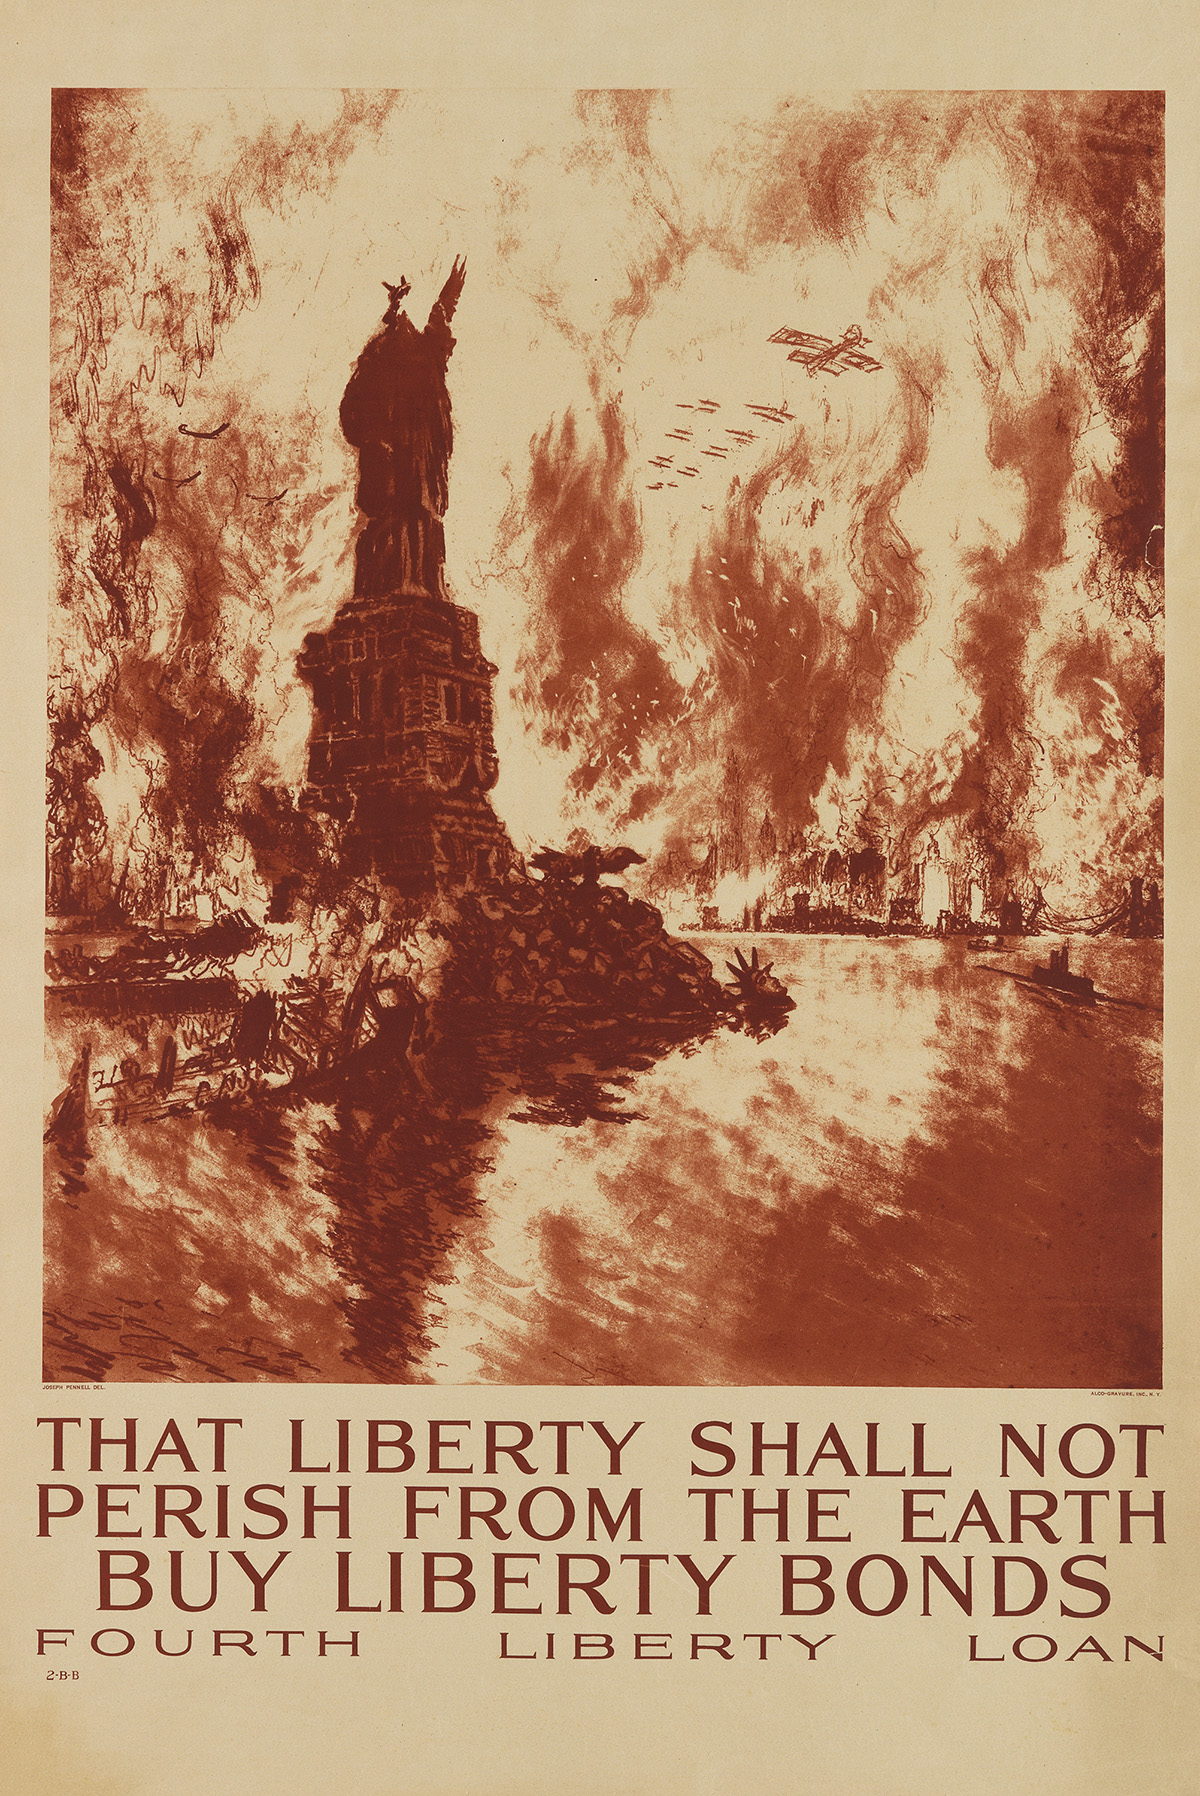 JOSEPH PENNELL (1857-1926). THAT LIBERTY SHALL NOT PERISH FROM THE EARTH. 1918. 33x22 inches, 83x56 cm. Alco-Gravure, Inc., New York.